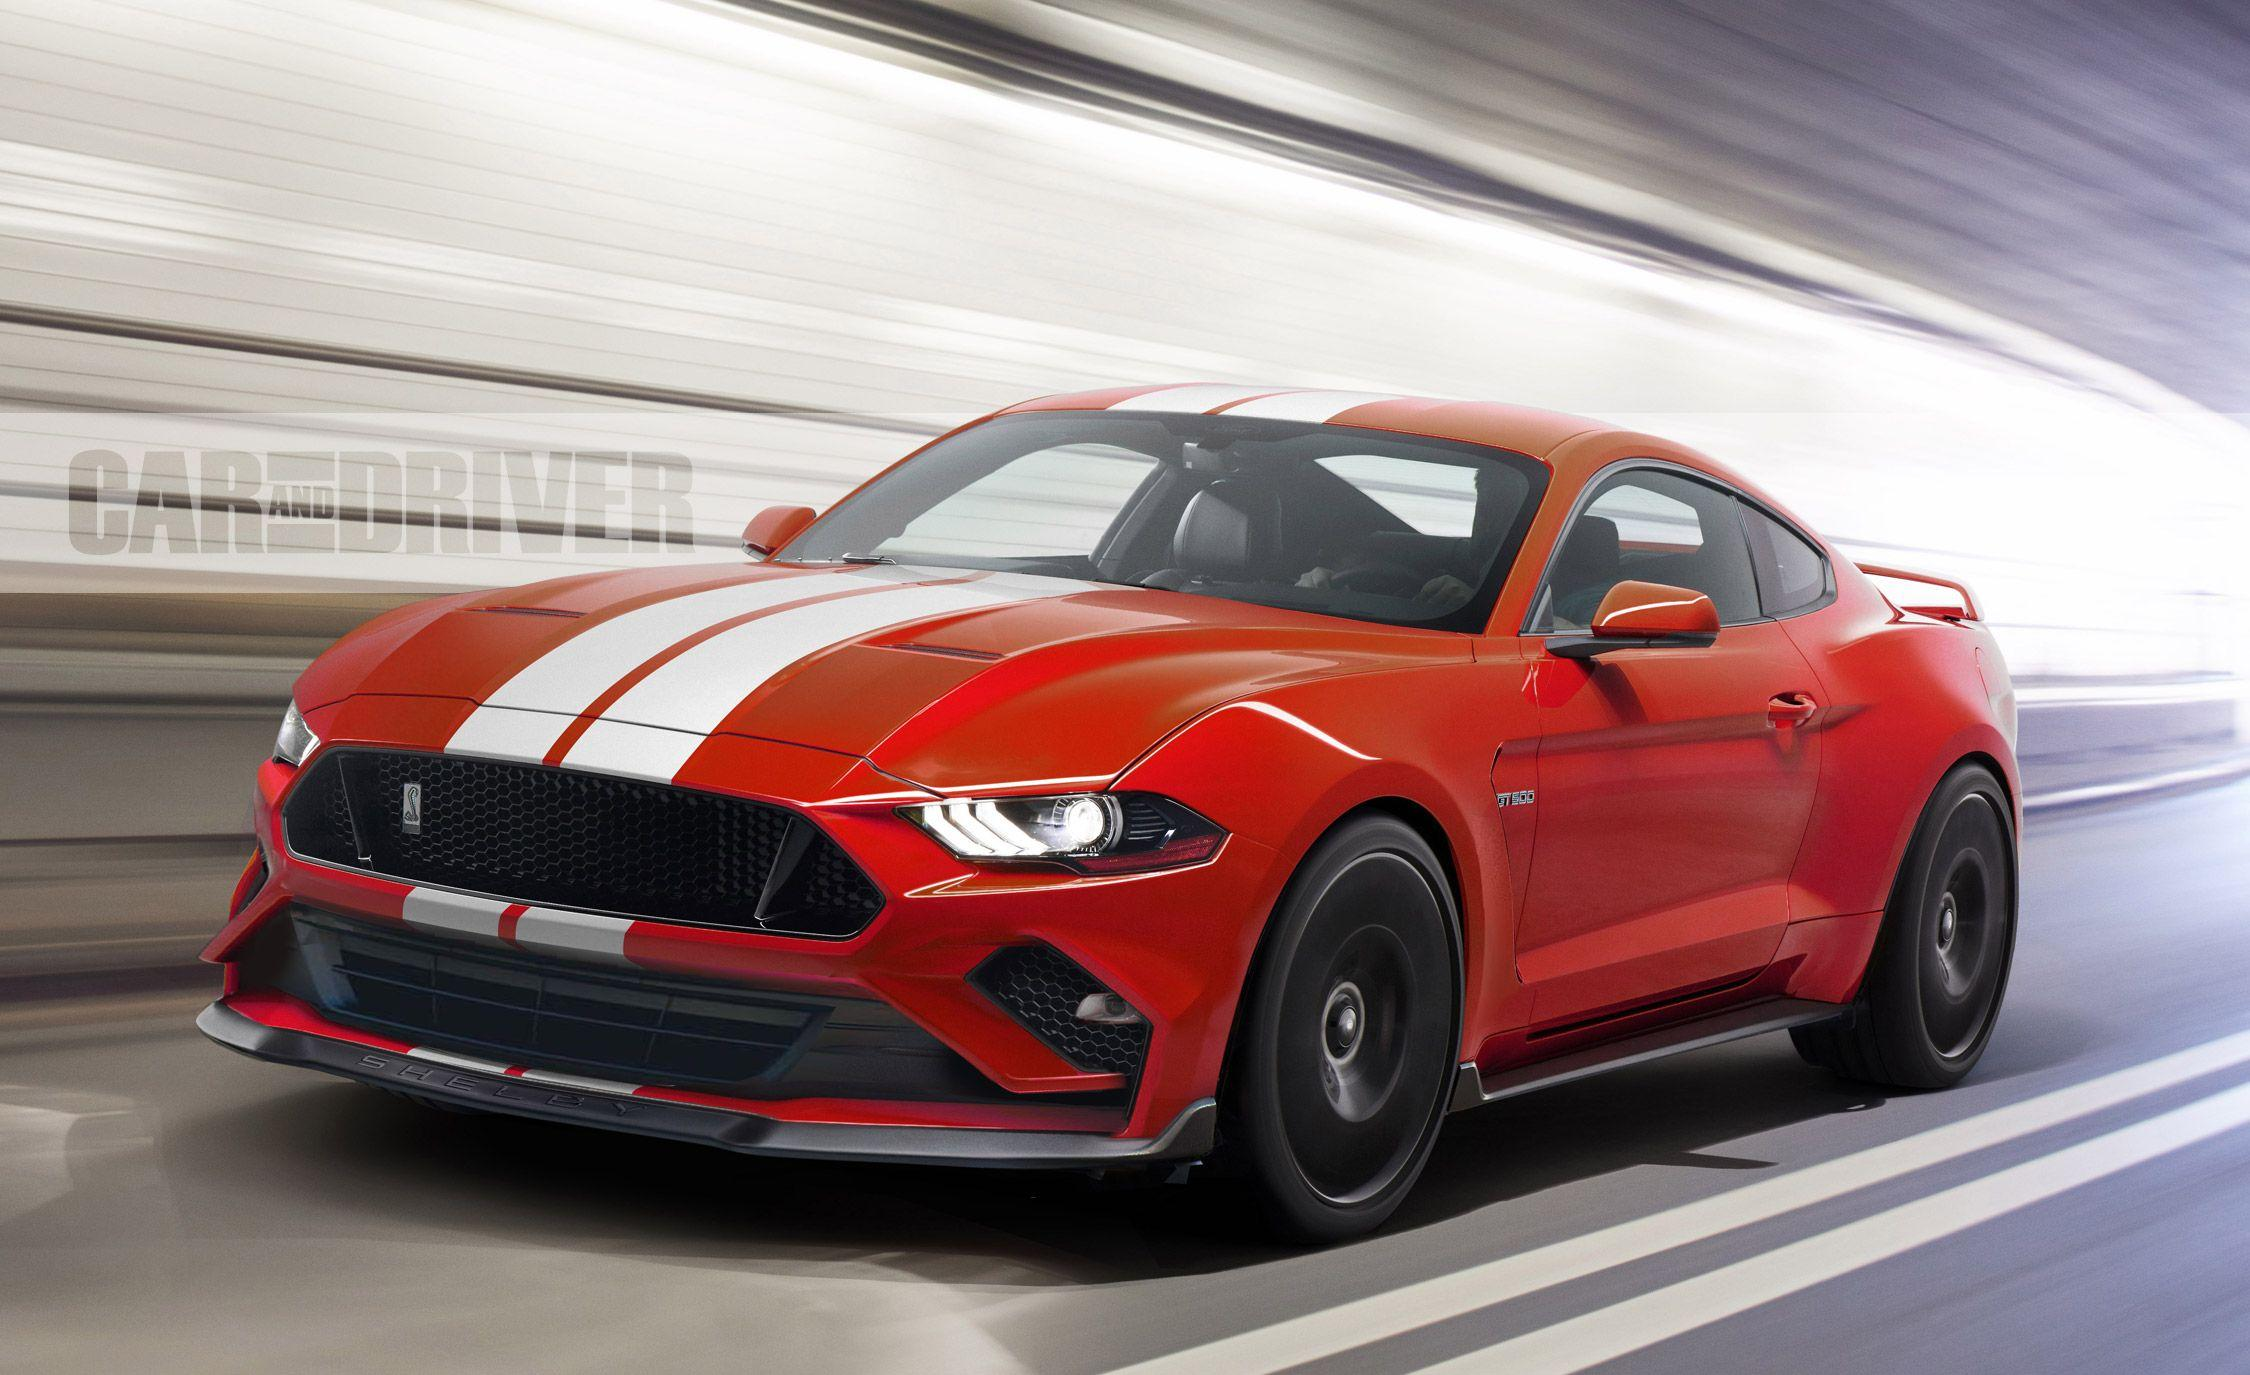 Ford Mustang Pictures Full Hd Pics Wallpapers The Shelby Gt Is Car